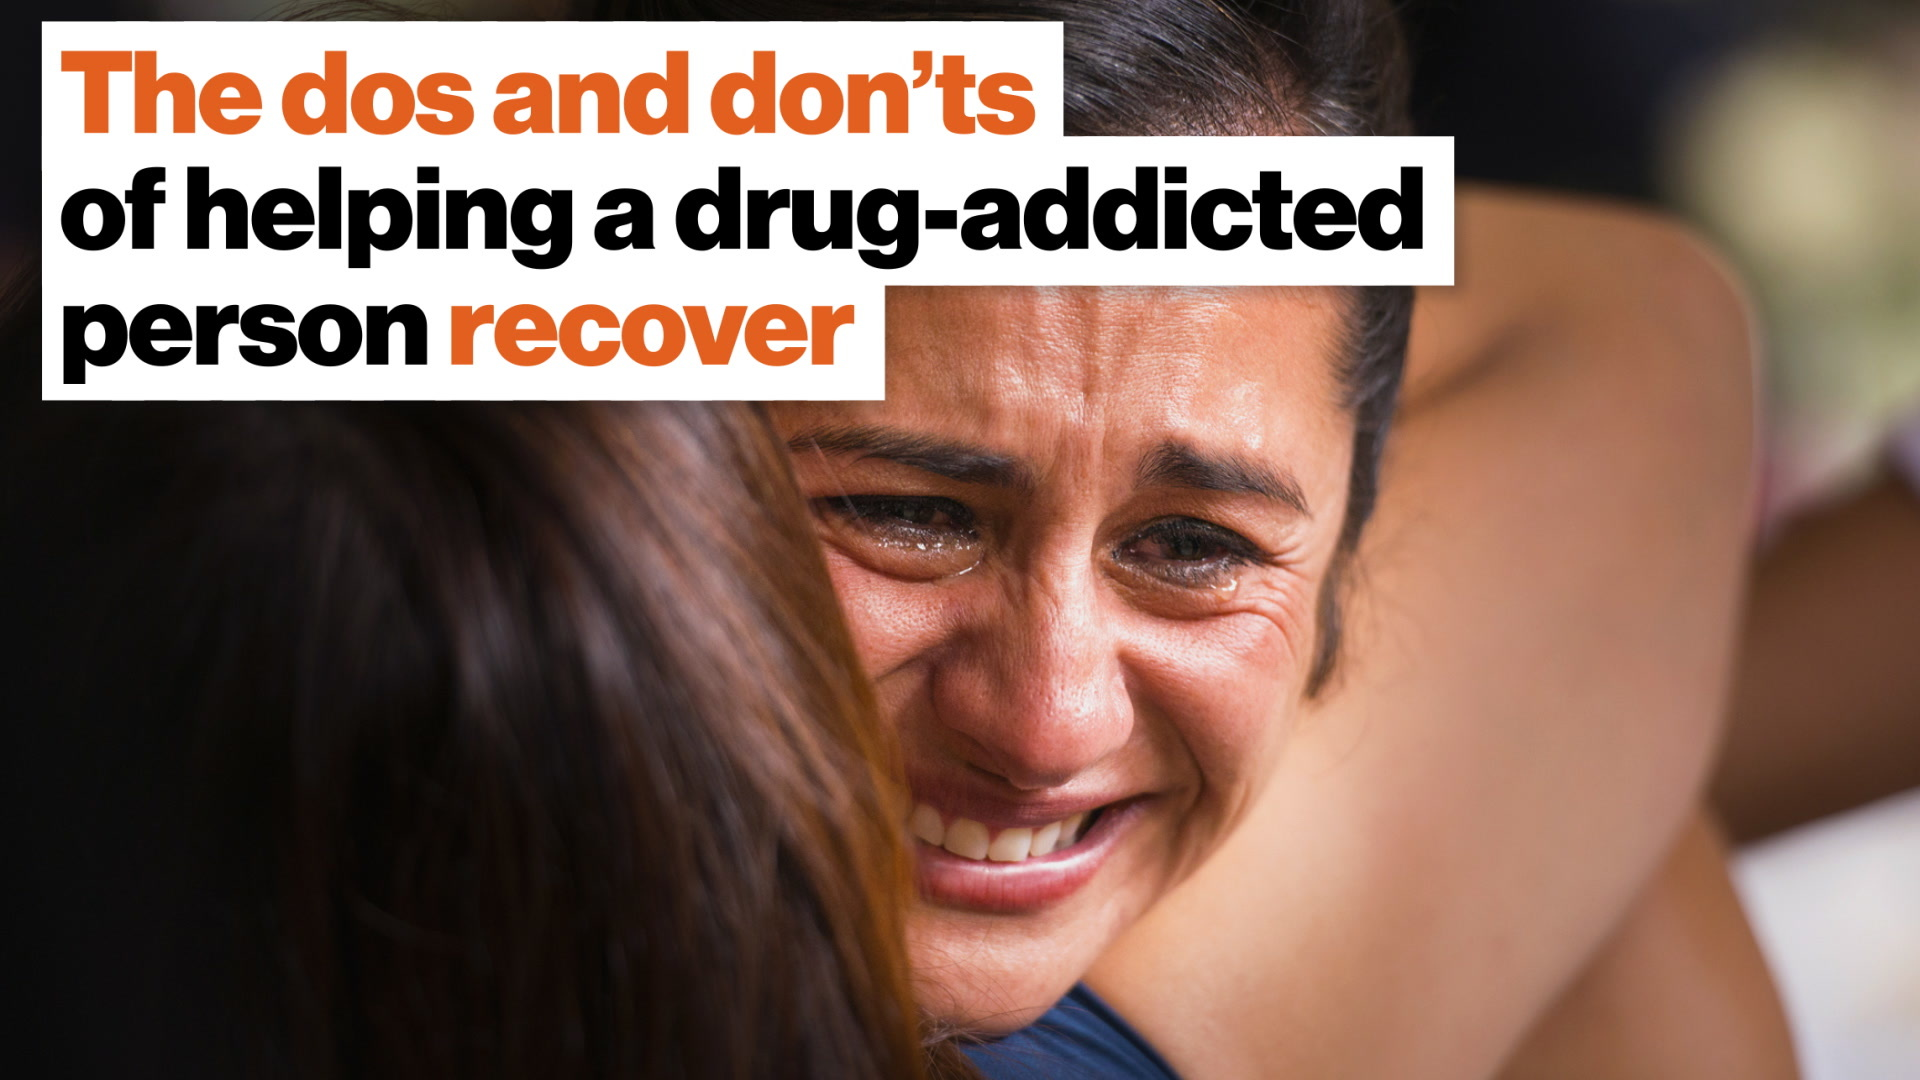 The dos and don'ts of helping a drug-addicted person recover